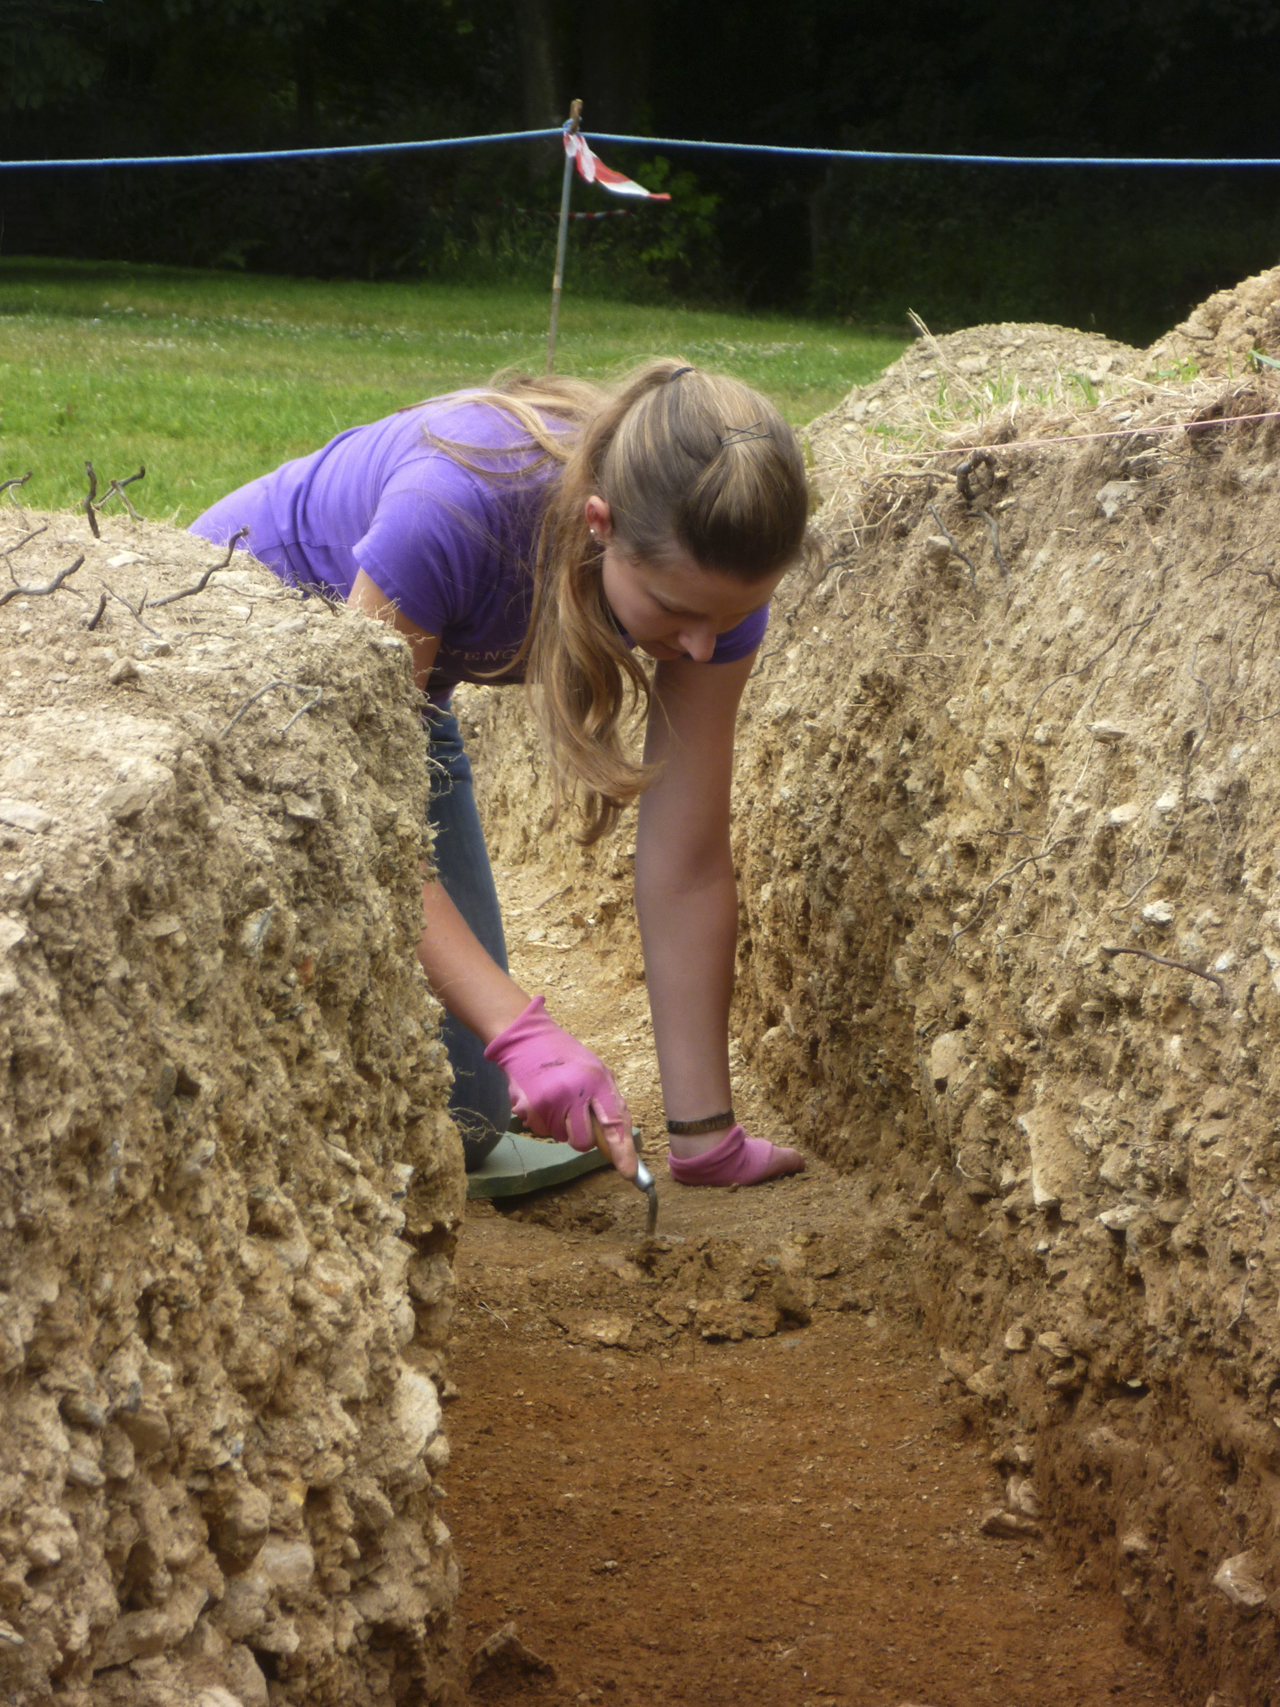 Excavating in the grounds of Godolphin House - July 13